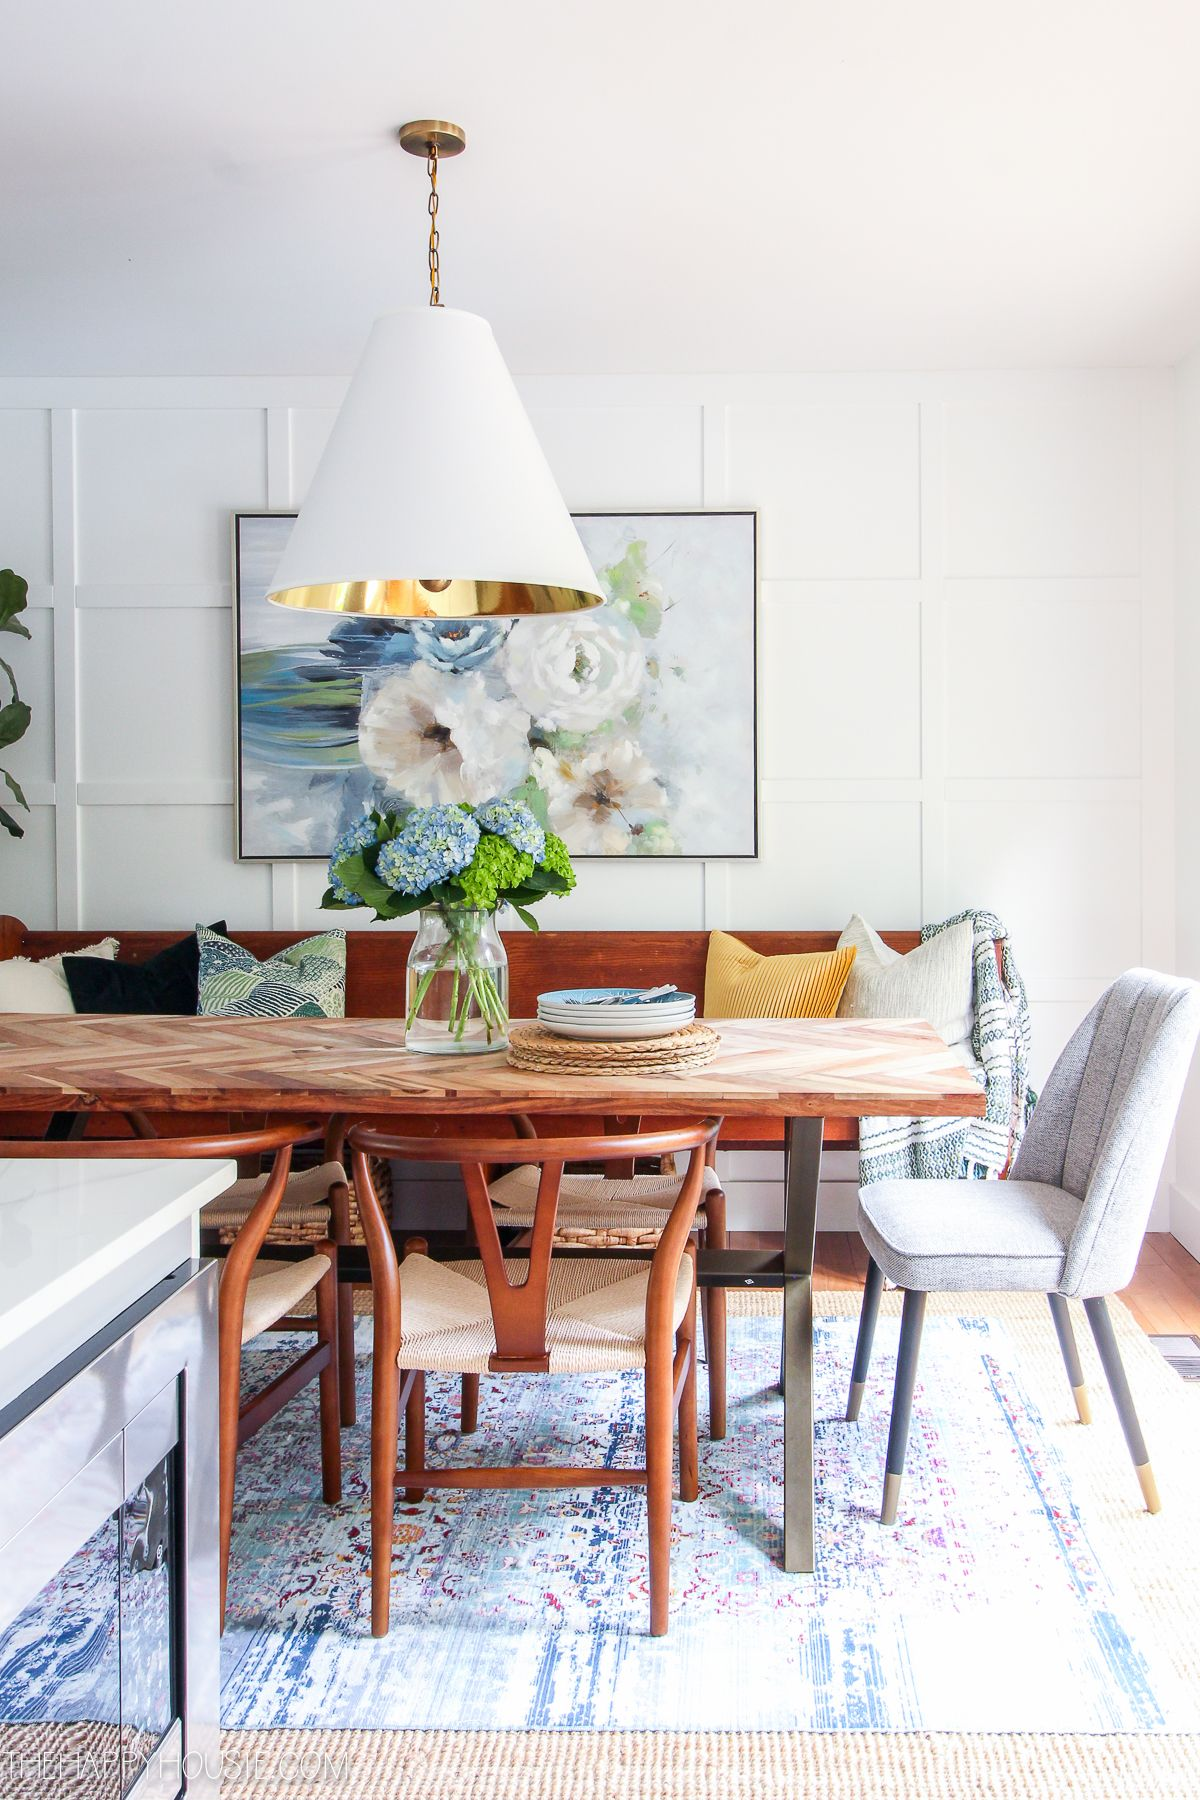 modern boho farmhouse dining room before after makeover reveal source guide farmhouse on boho chic kitchen table decor id=14952